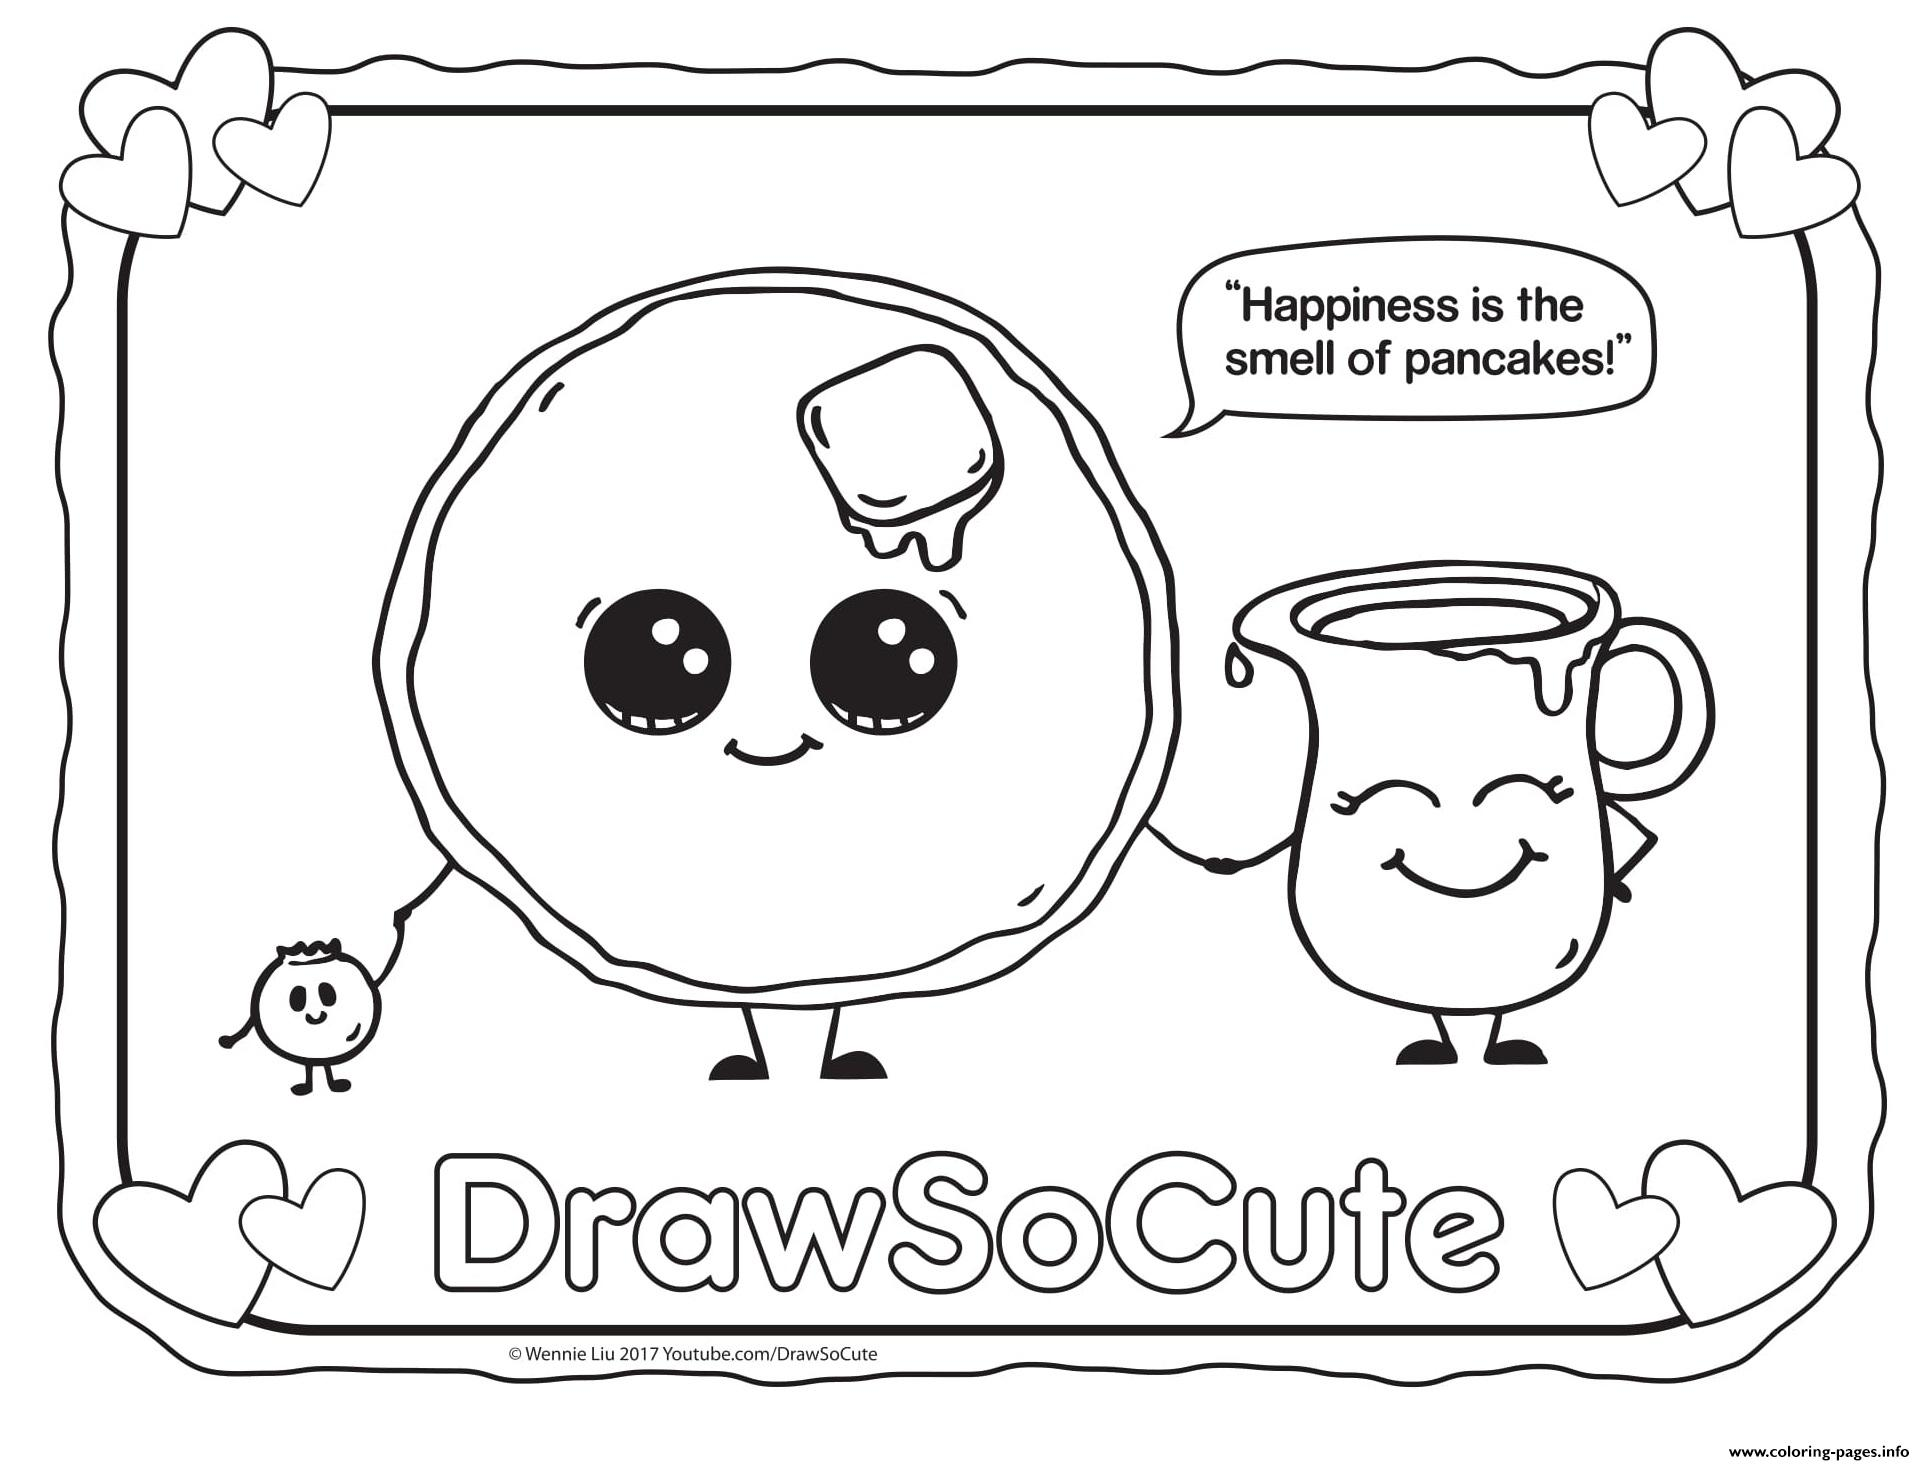 cute coloring pages for kids Pancake Draw So Cute Coloring Pages Printable cute coloring pages for kids